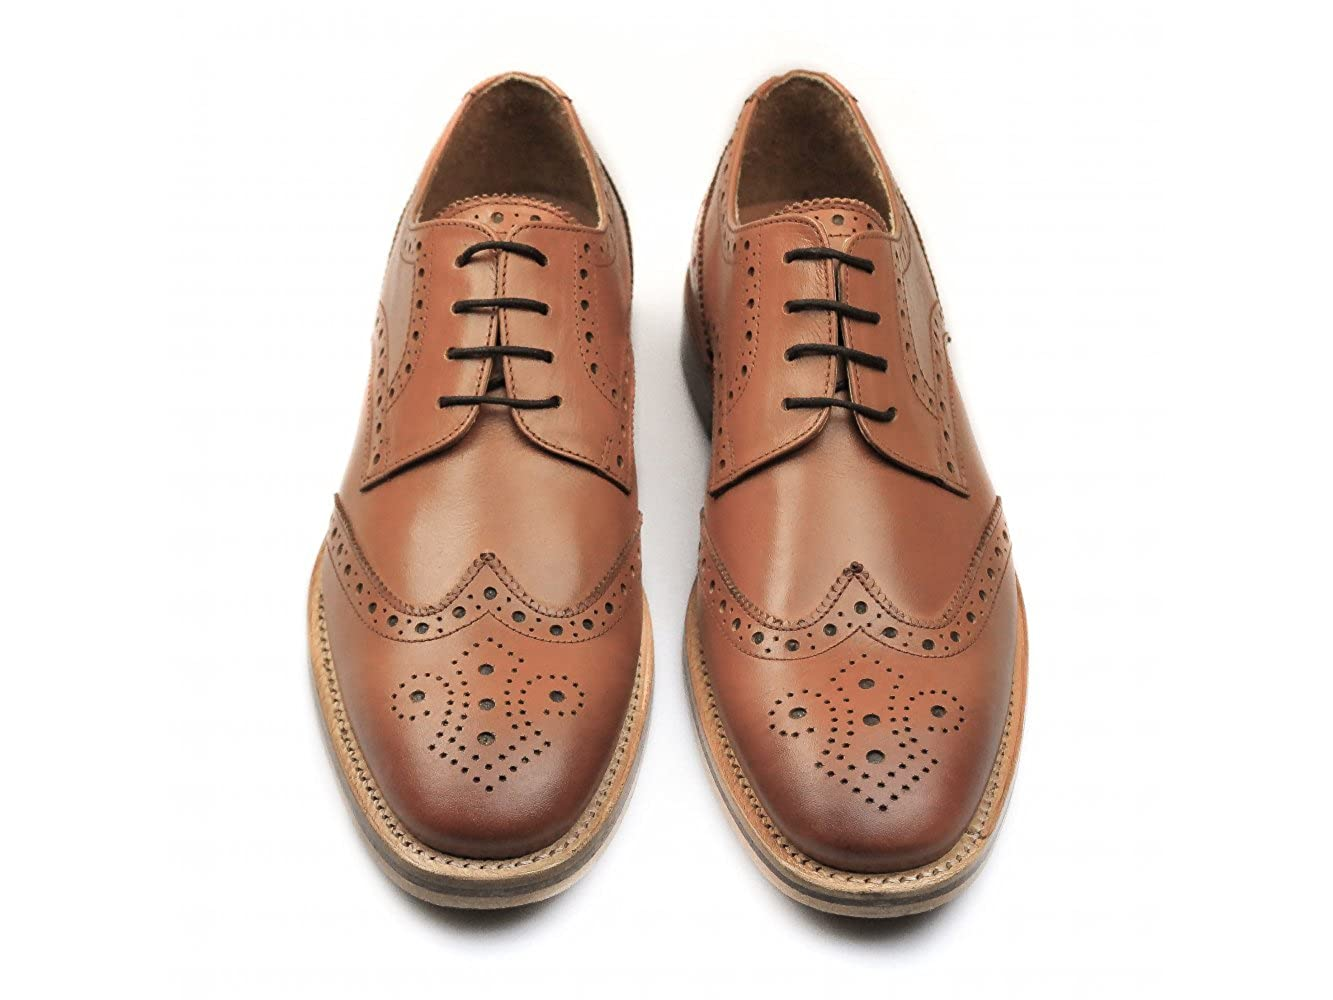 c4532f4d CATESBY SHOEMAKERS Surrey Mens Leather Goodyear Welted Brogue Shoes Tan:  Amazon.co.uk: Shoes & Bags